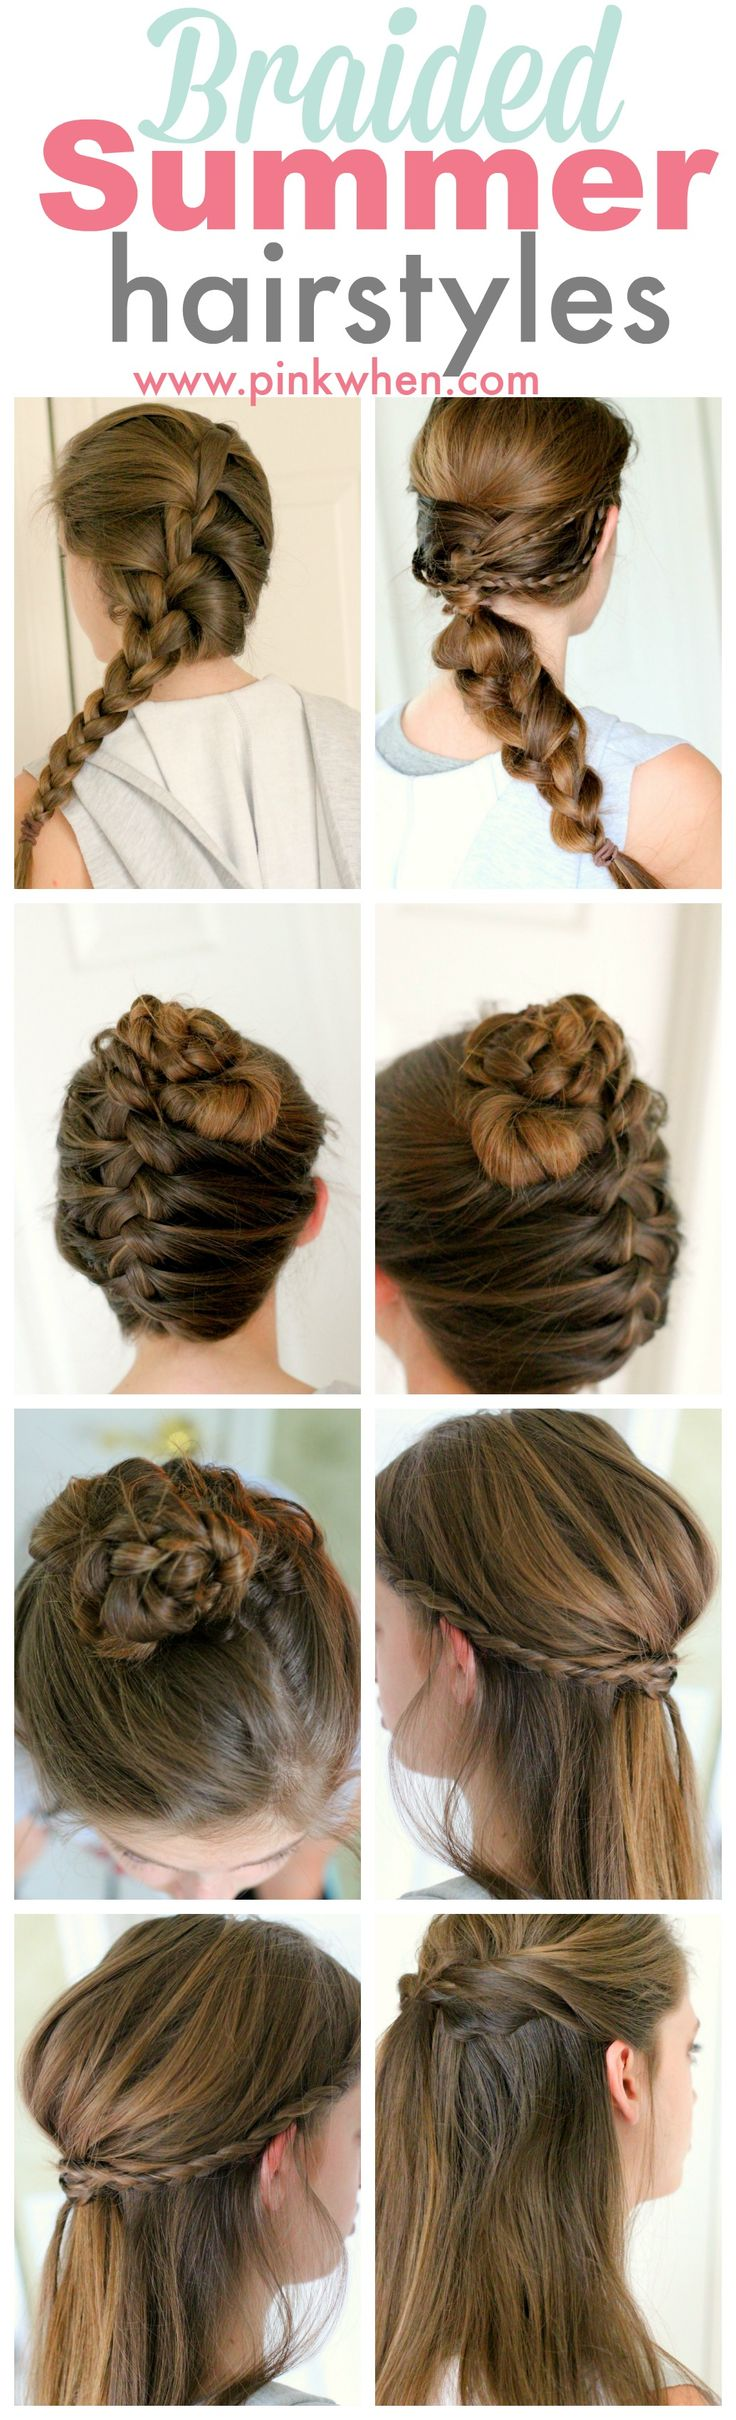 Braided Summer Hairstyle ideas